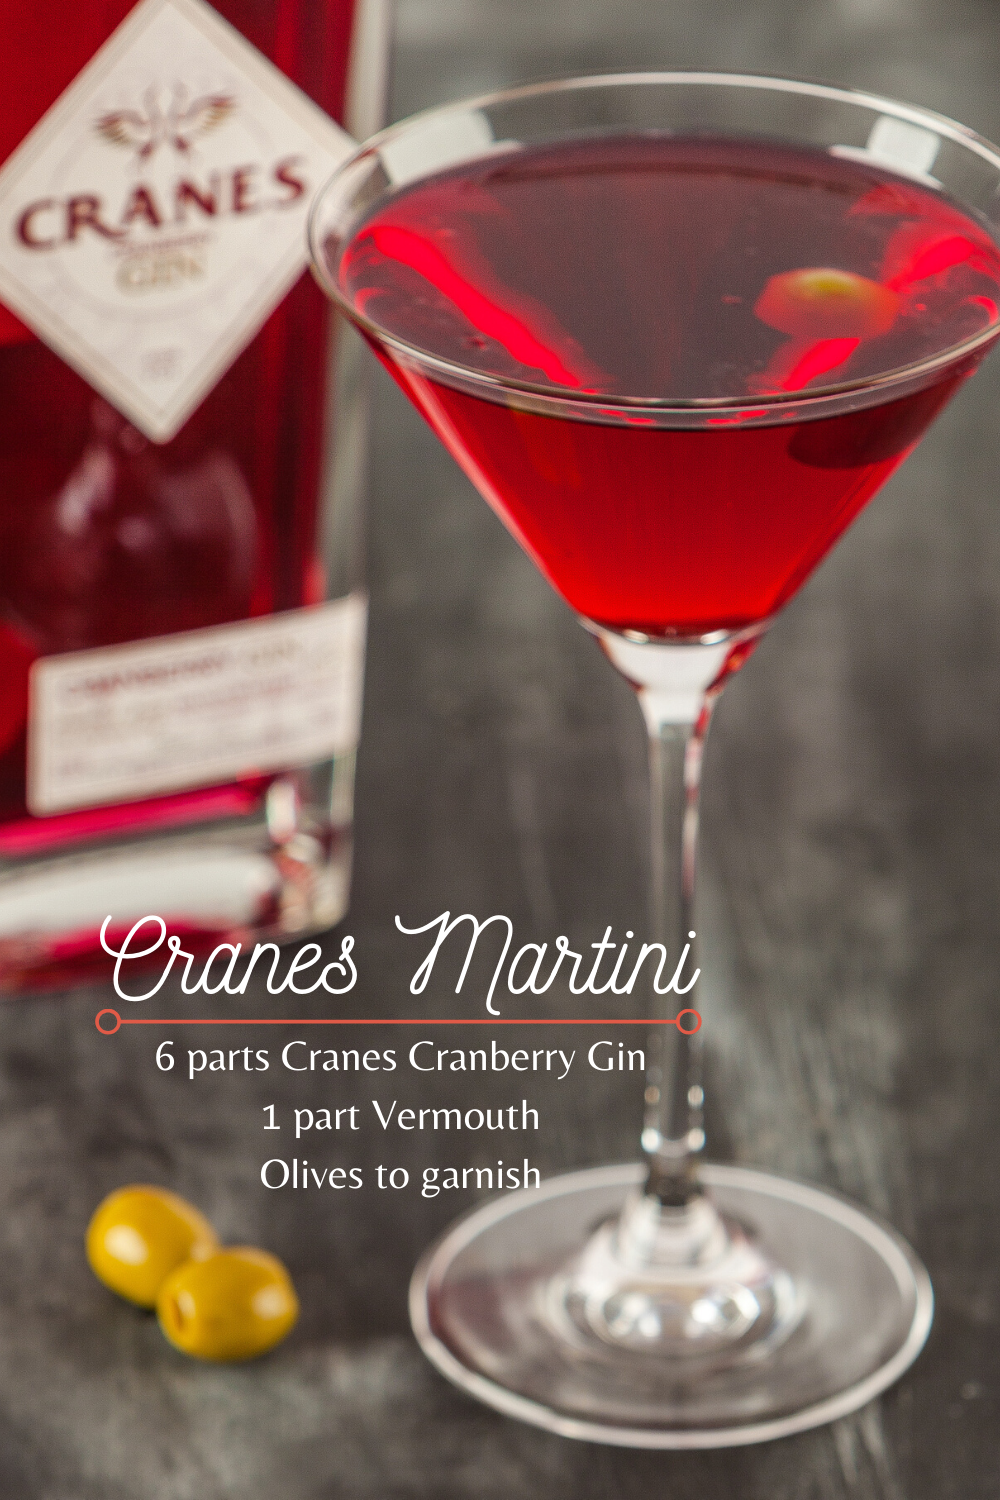 A Martini is probably the most famous and traditional cocktail, however we have put a twist on the classic using Cranes Cranberry Gin! Cranes award-winning, premium Cranberry Gin is smooth and fruity, yet delightfully sharp. It's a must-try for any gin-enthusiast. We like ours shaken, not stirred, what about you? Buy a bottle now on Amazon or Ocado. . . . . . . . . . . #gin #martini #cranes #cranberry #cocktail #vermouth #drink #spirit #cambridge #classic #alcohol #recipe #Amazon #Ocado #olives